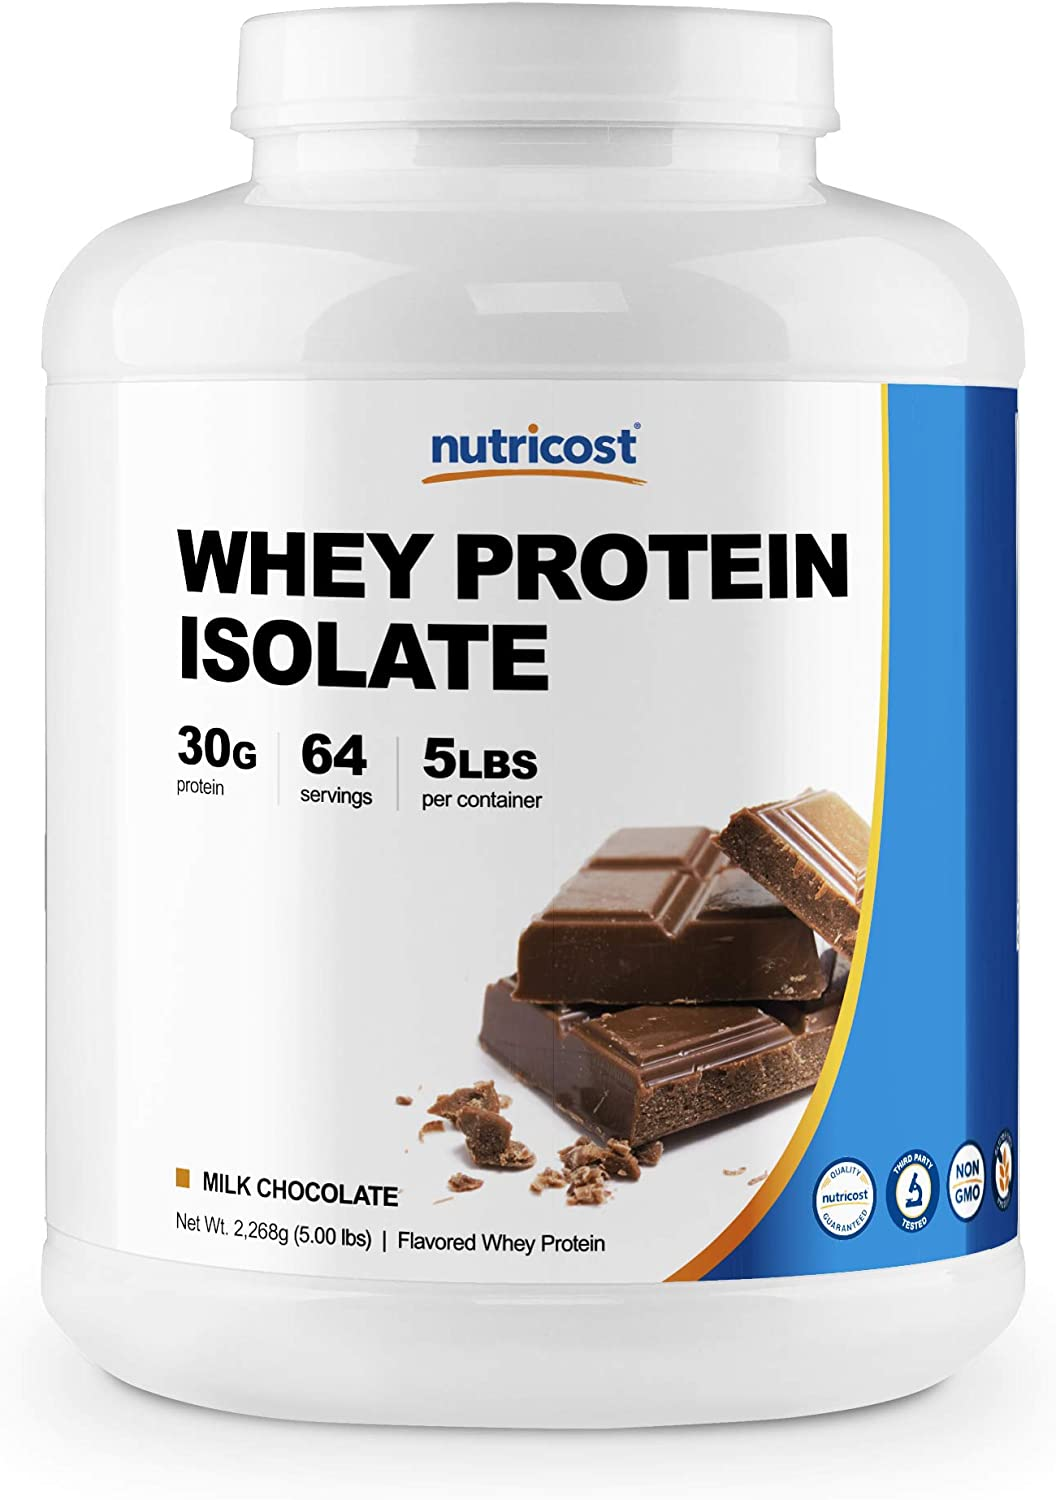 Nutricost Whey Protein Isolate Powder, Milk Chocolate